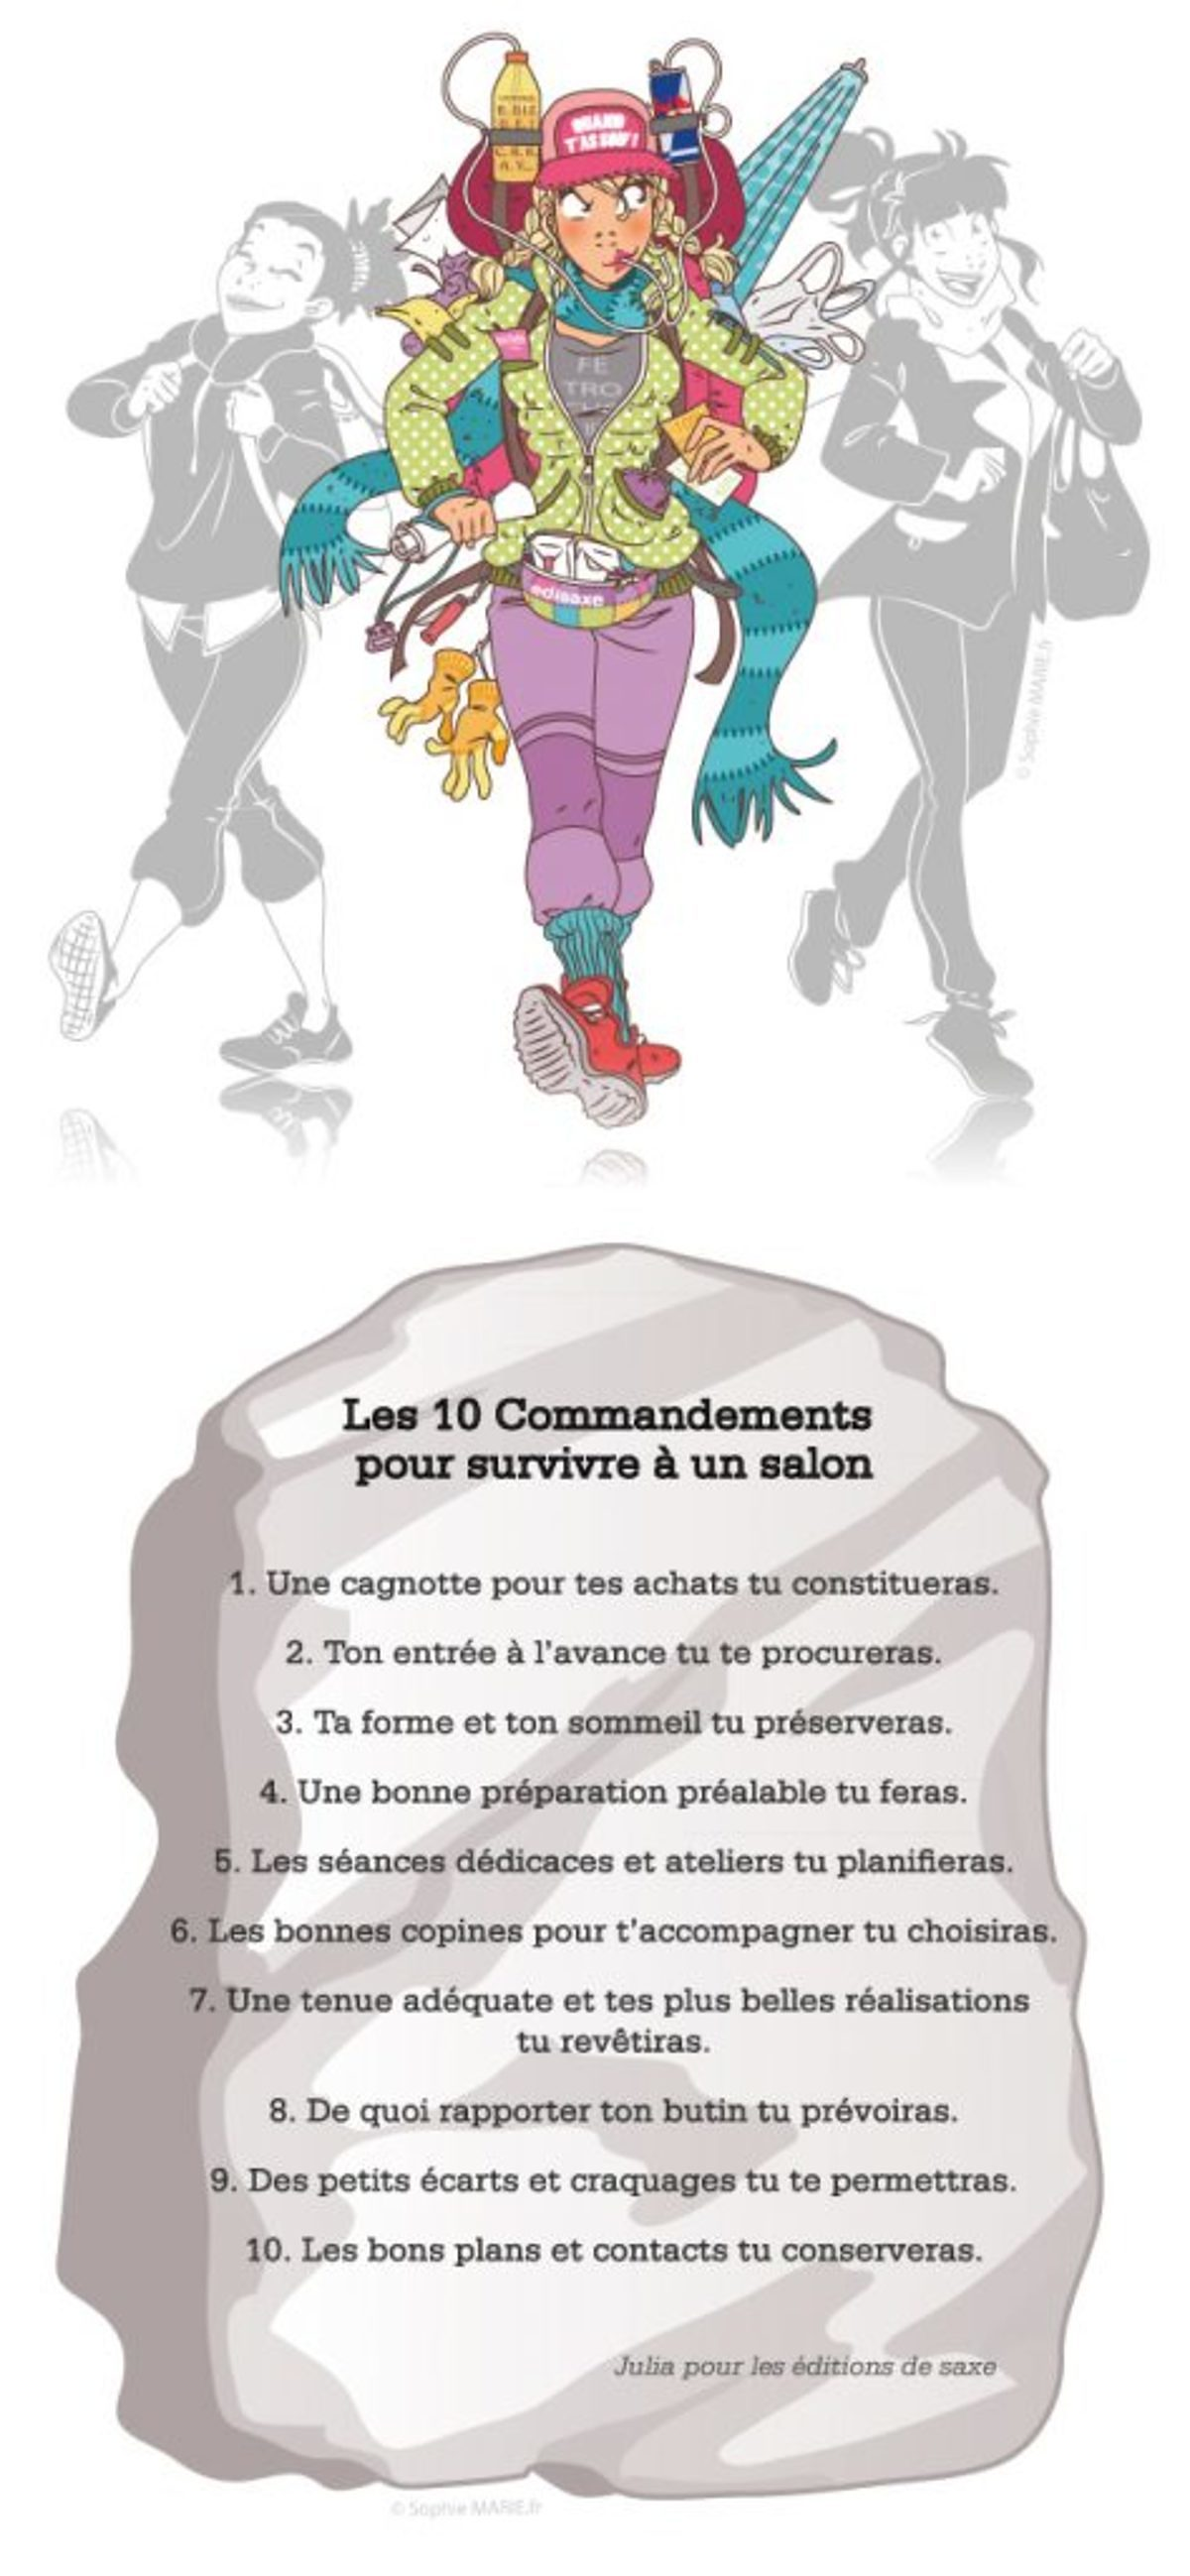 10 Commandements Survivre Salon Humour